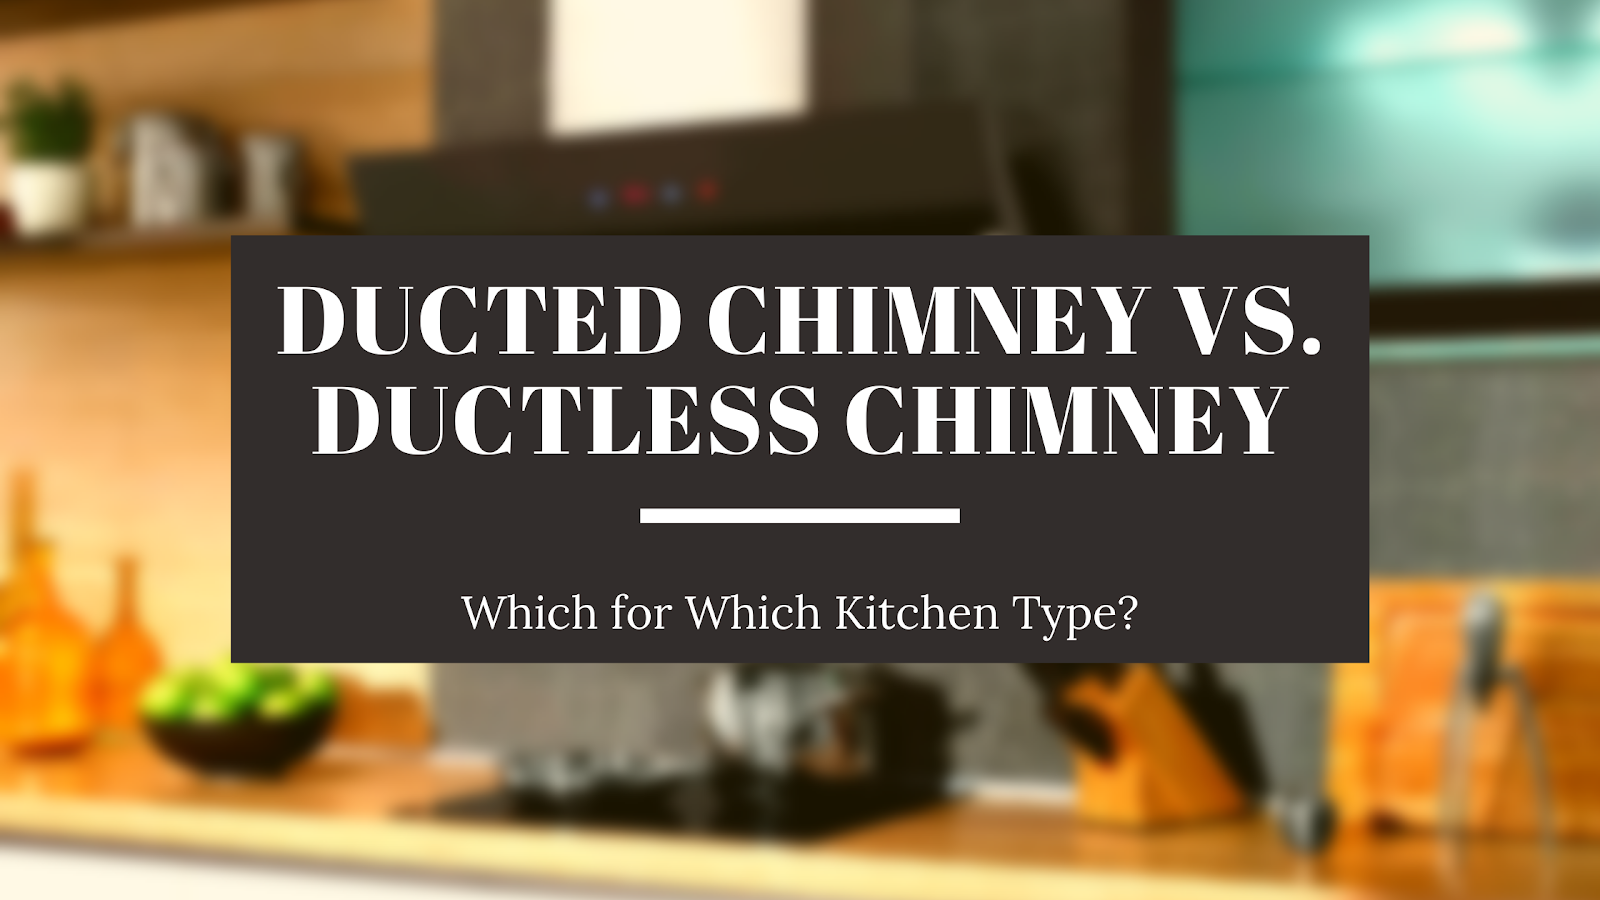 Kitchen Chimney Duct vs Ductless - Which for Which Kitchen Type? 1